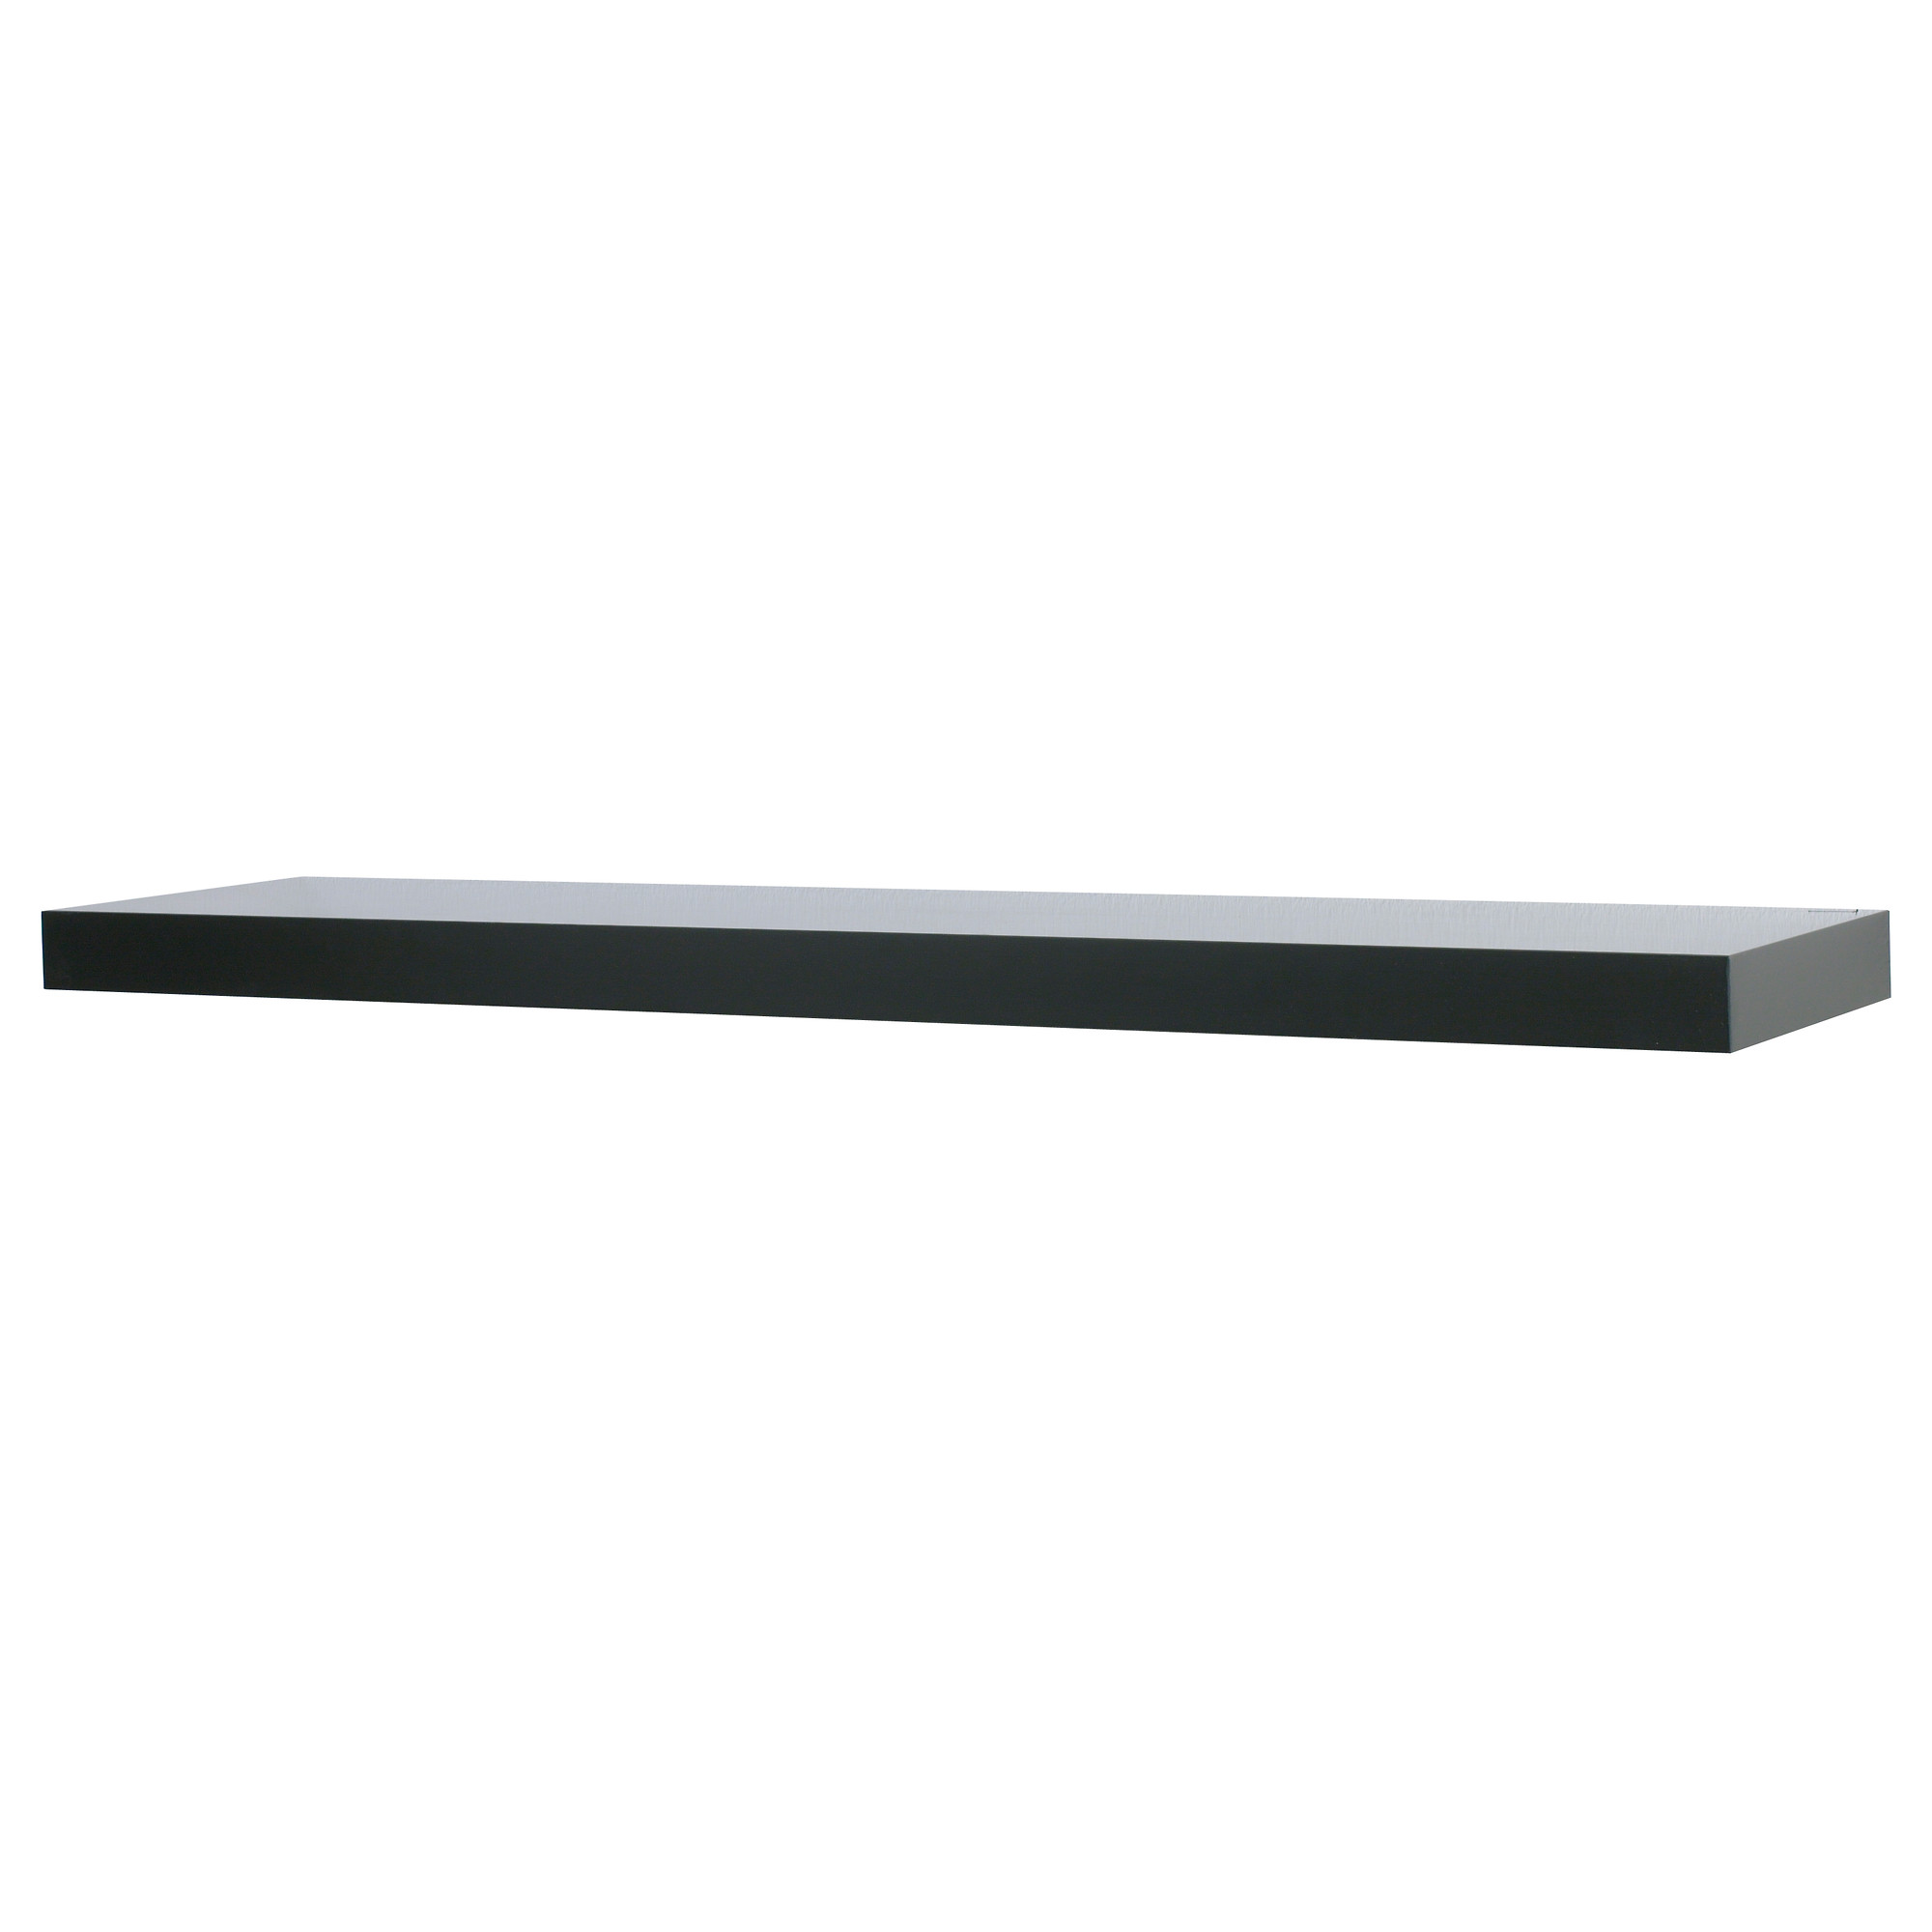 Ikea Lack Wandregal Birke Wandregal Lack Schwarz In 2019 Products Ikea Lack Shelves